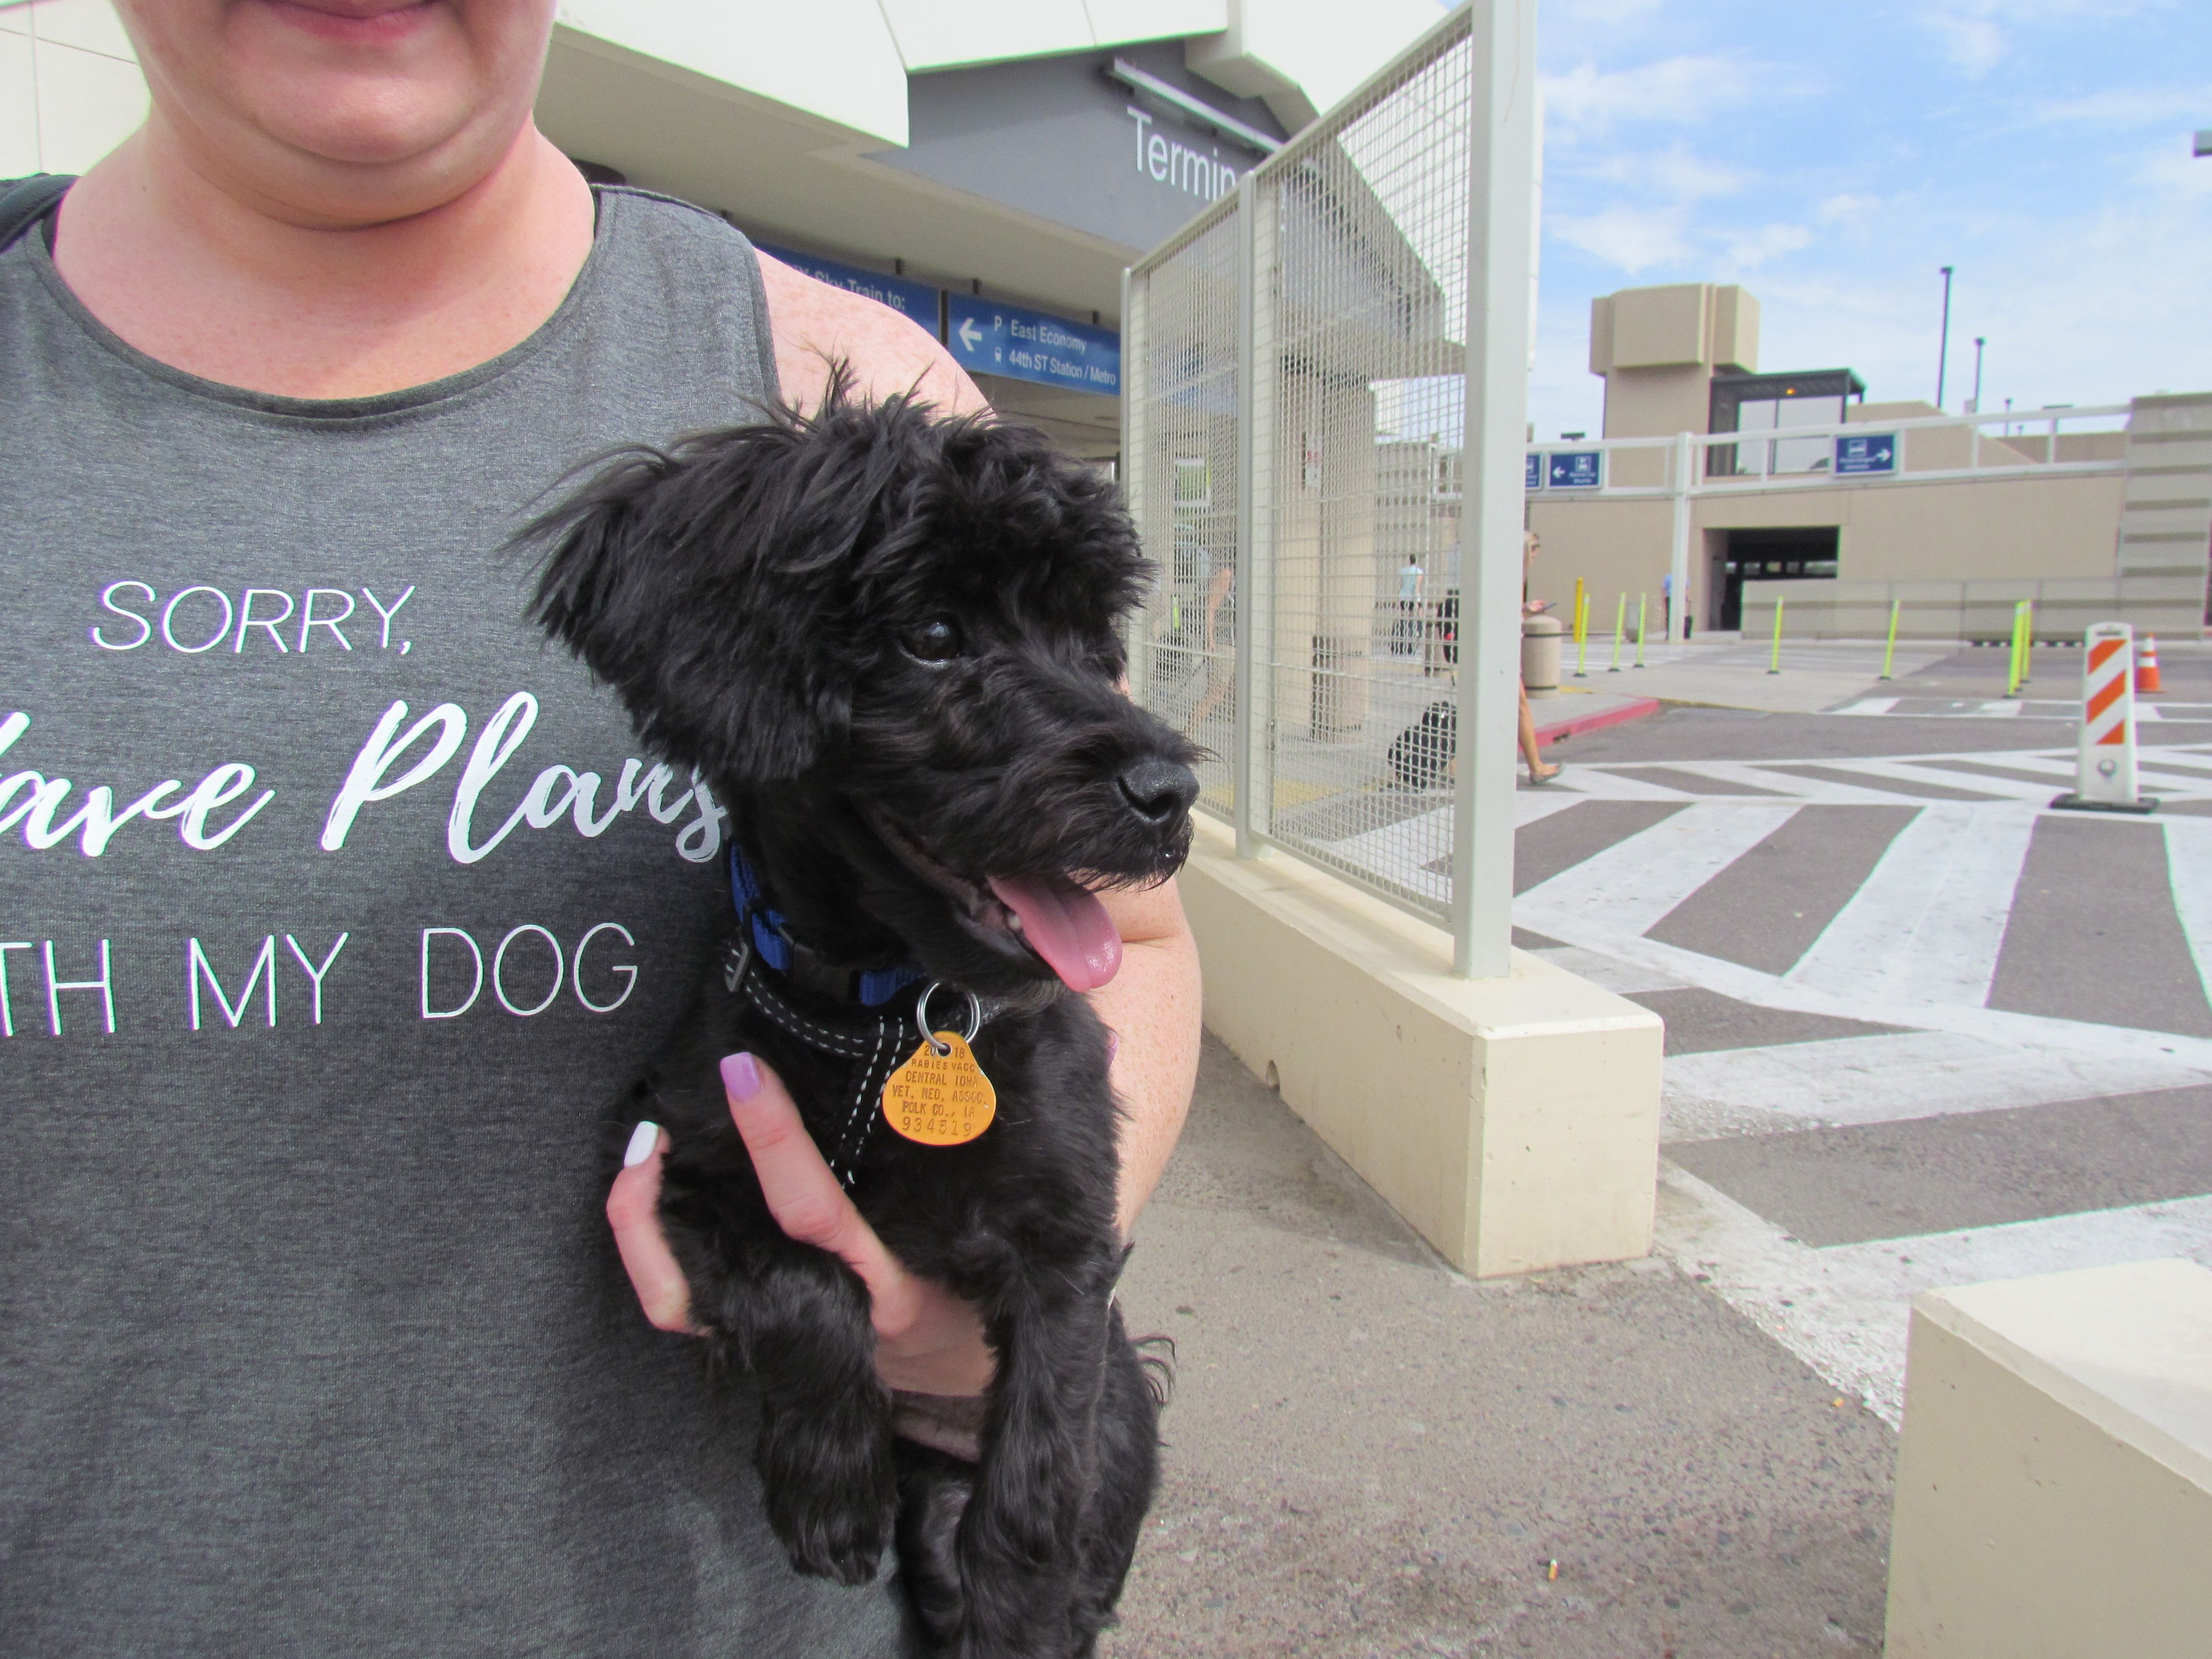 Charlee Is A Six Month Old Maltipoo From West Des Moines Iowa He